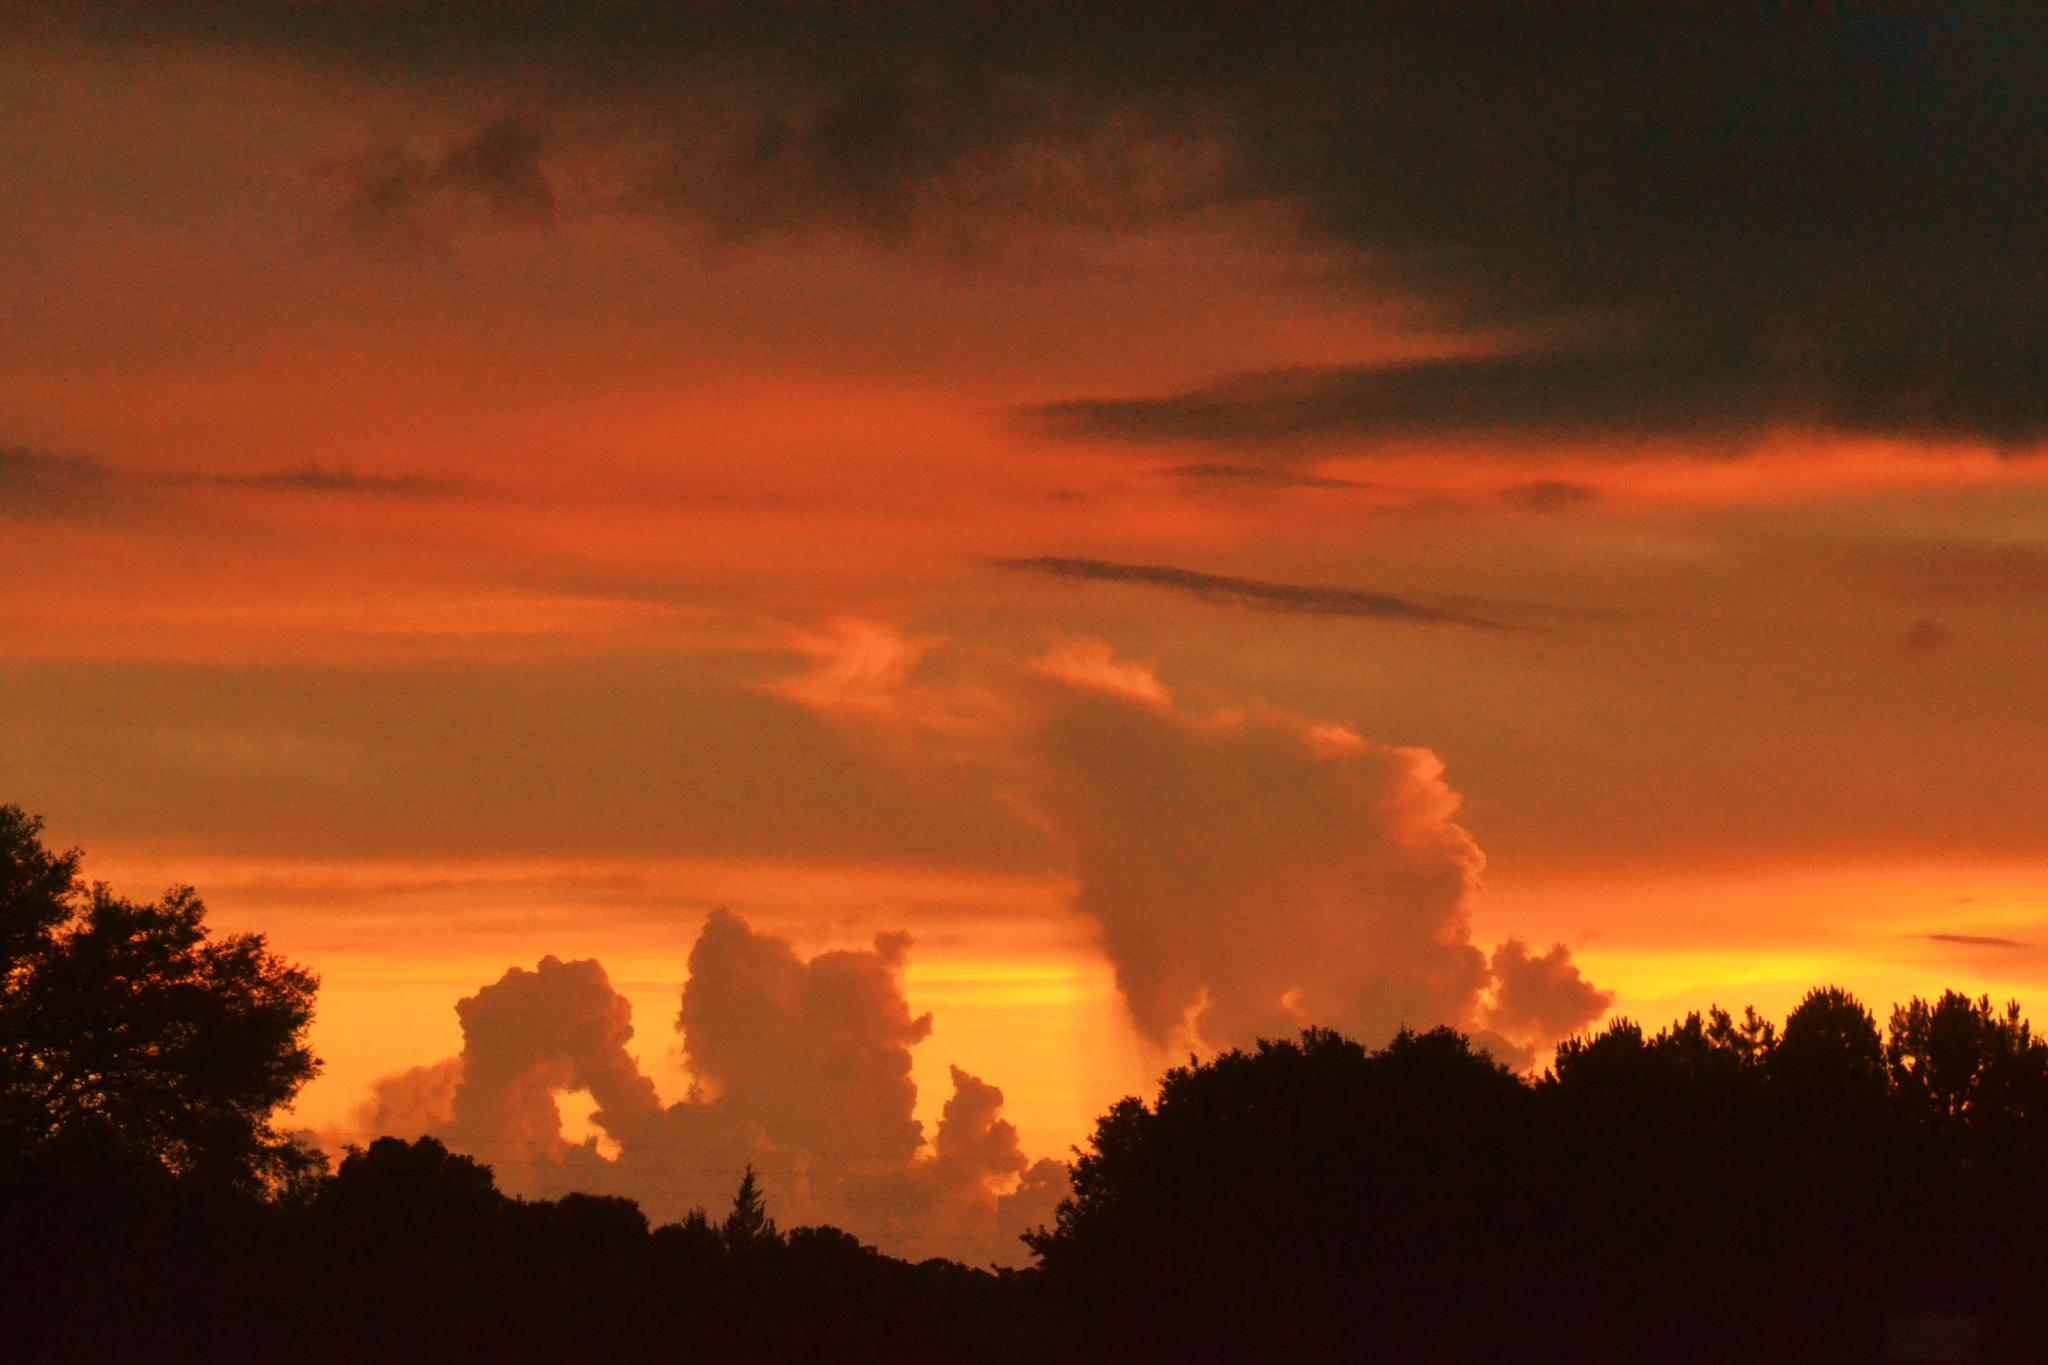 Sunset and Incoming Storm by Faye Kramer